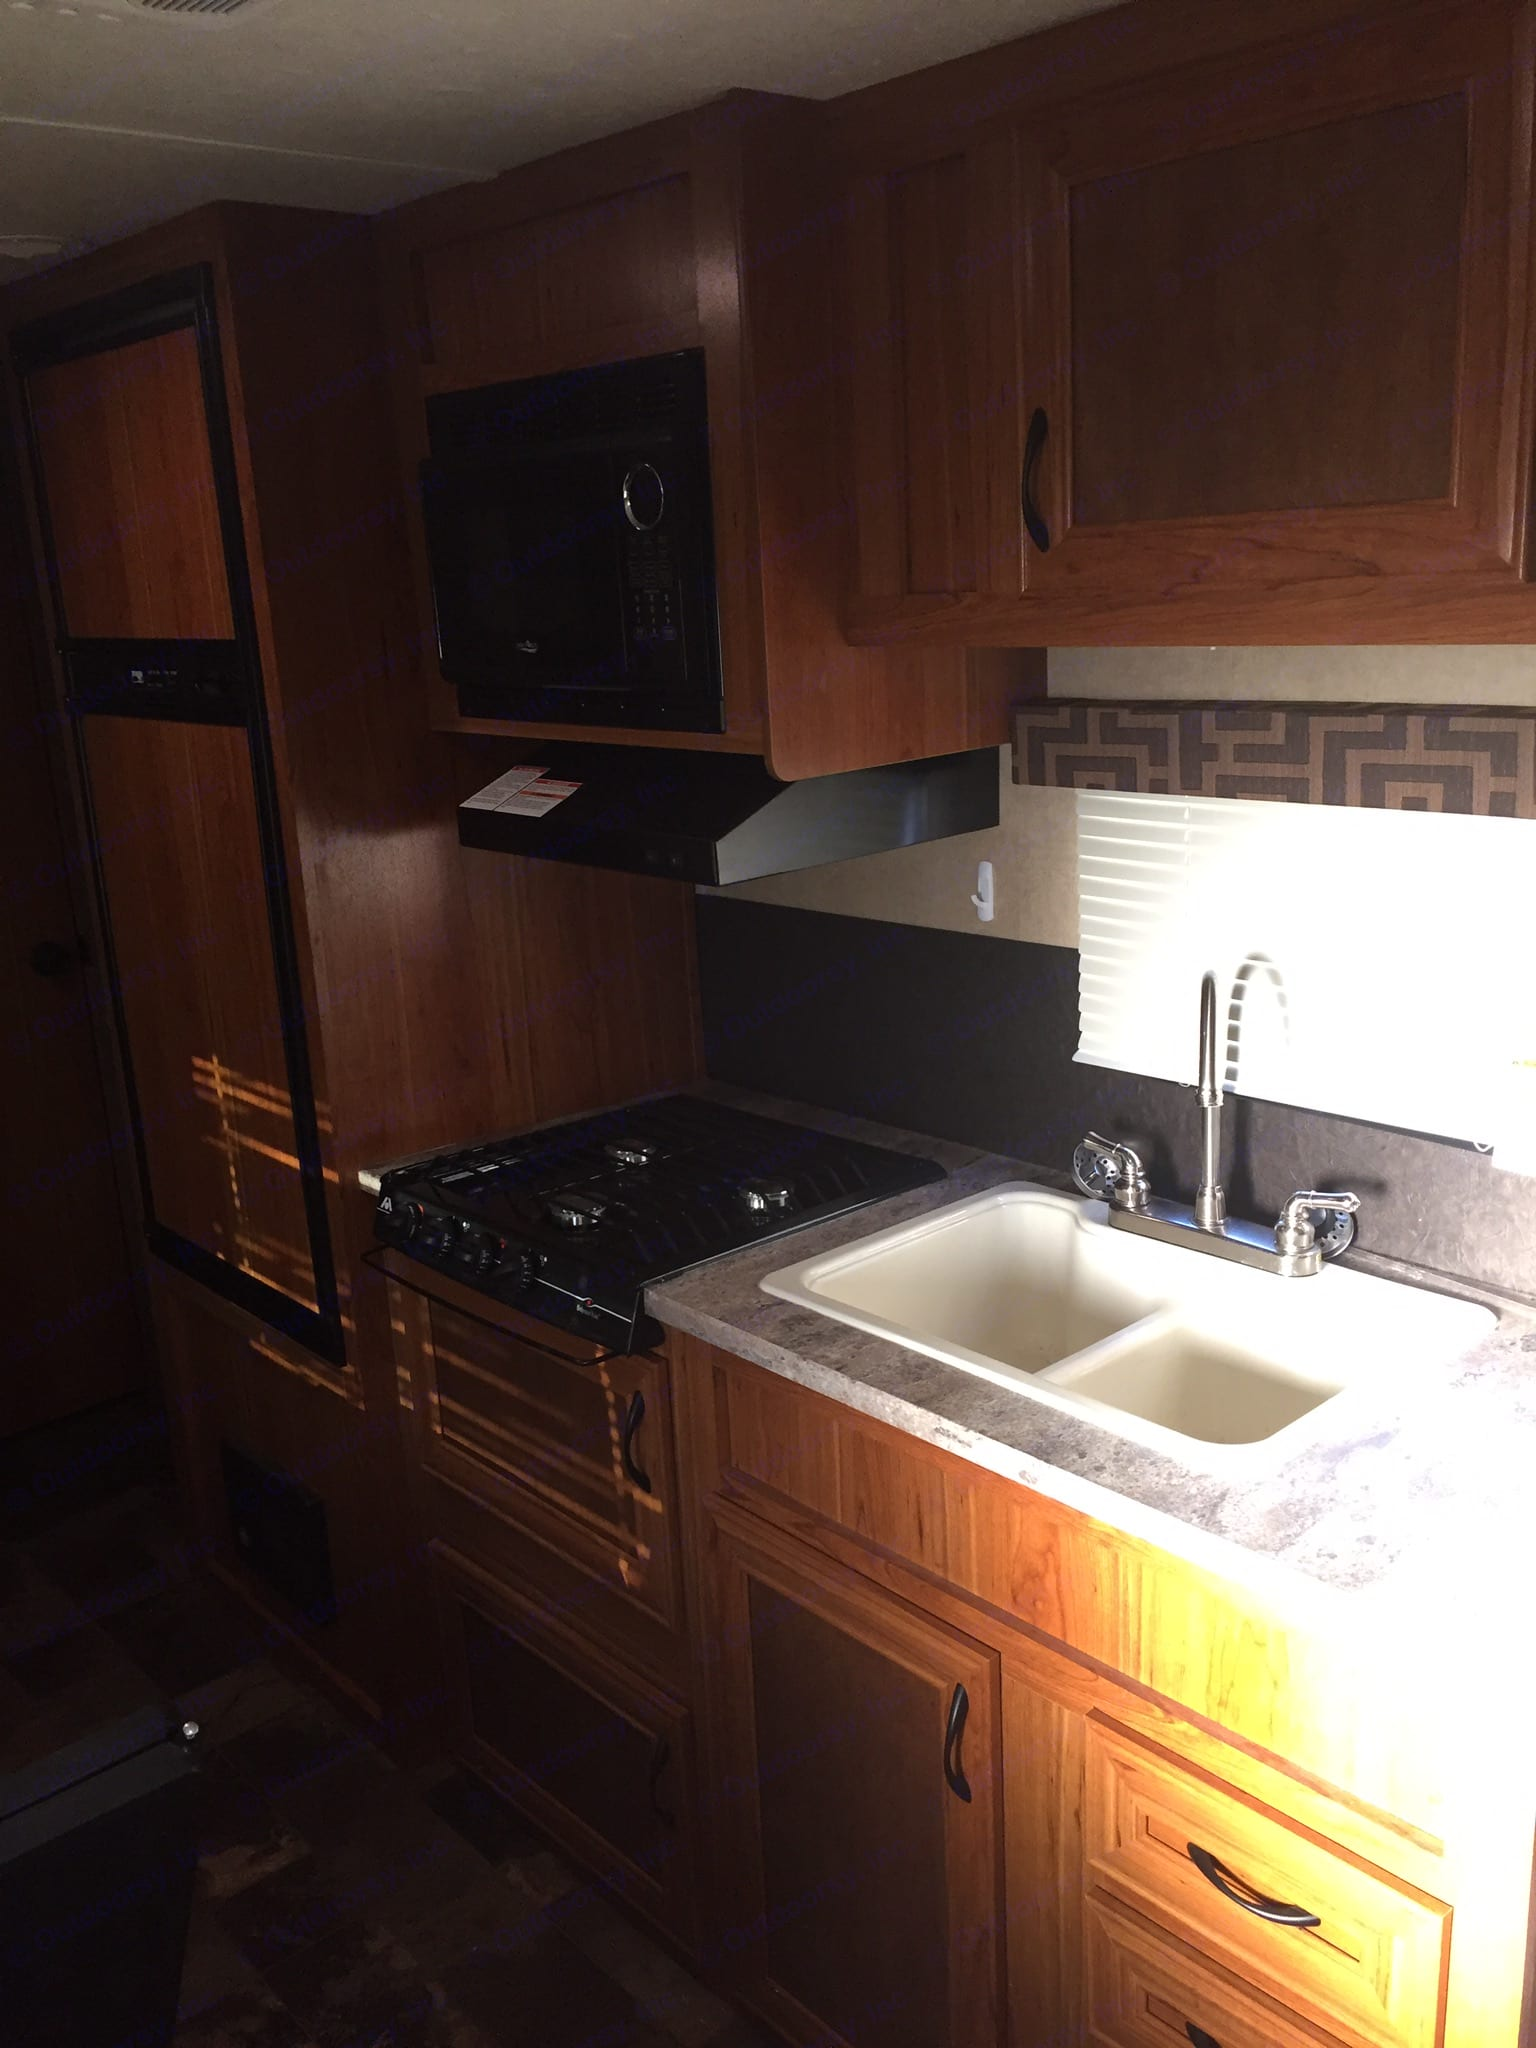 Kitchen has fridge, range with vent hood, microwave, and sink. . Starcraft Ar-One 2016